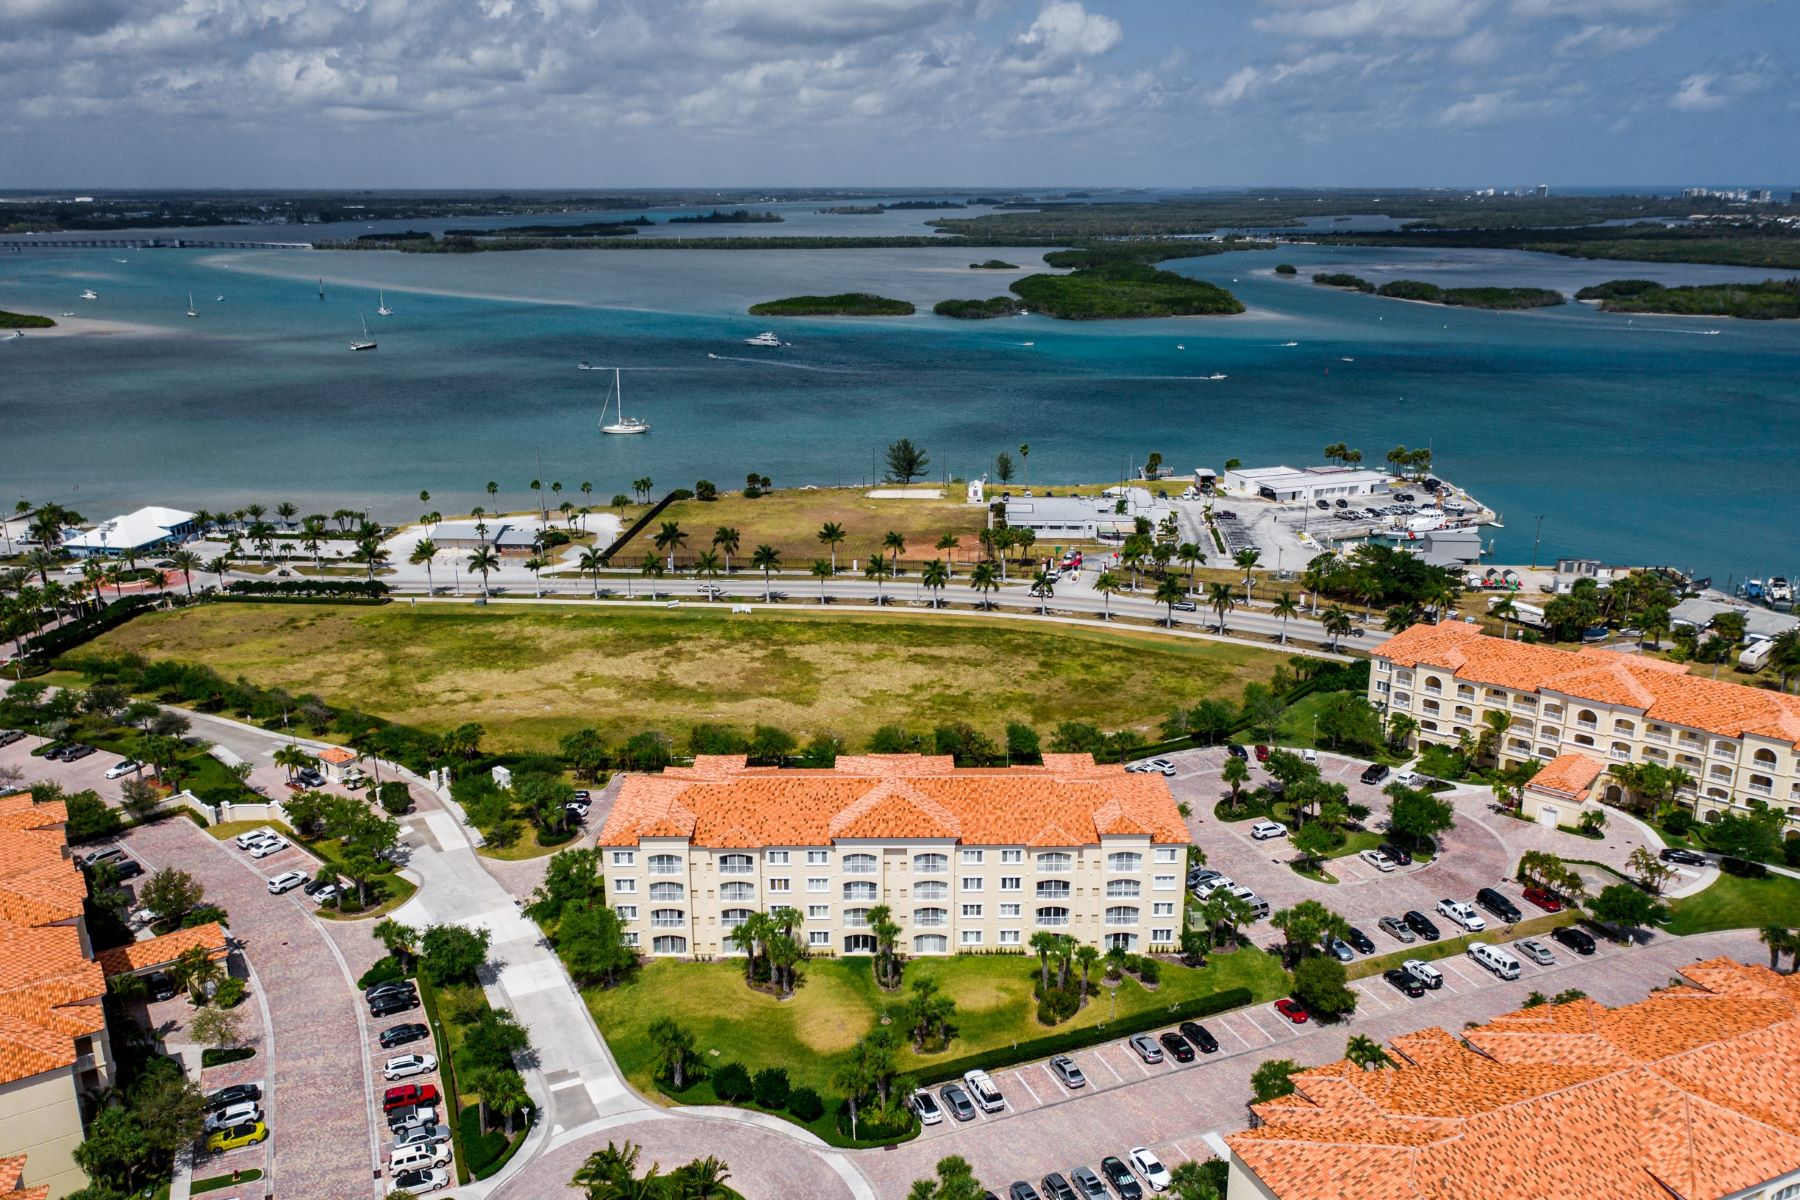 37 Harbour Isle Drive 37 Harbour Isle Drive, 203 Fort Pierce, Florida 34949 Vereinigte Staaten